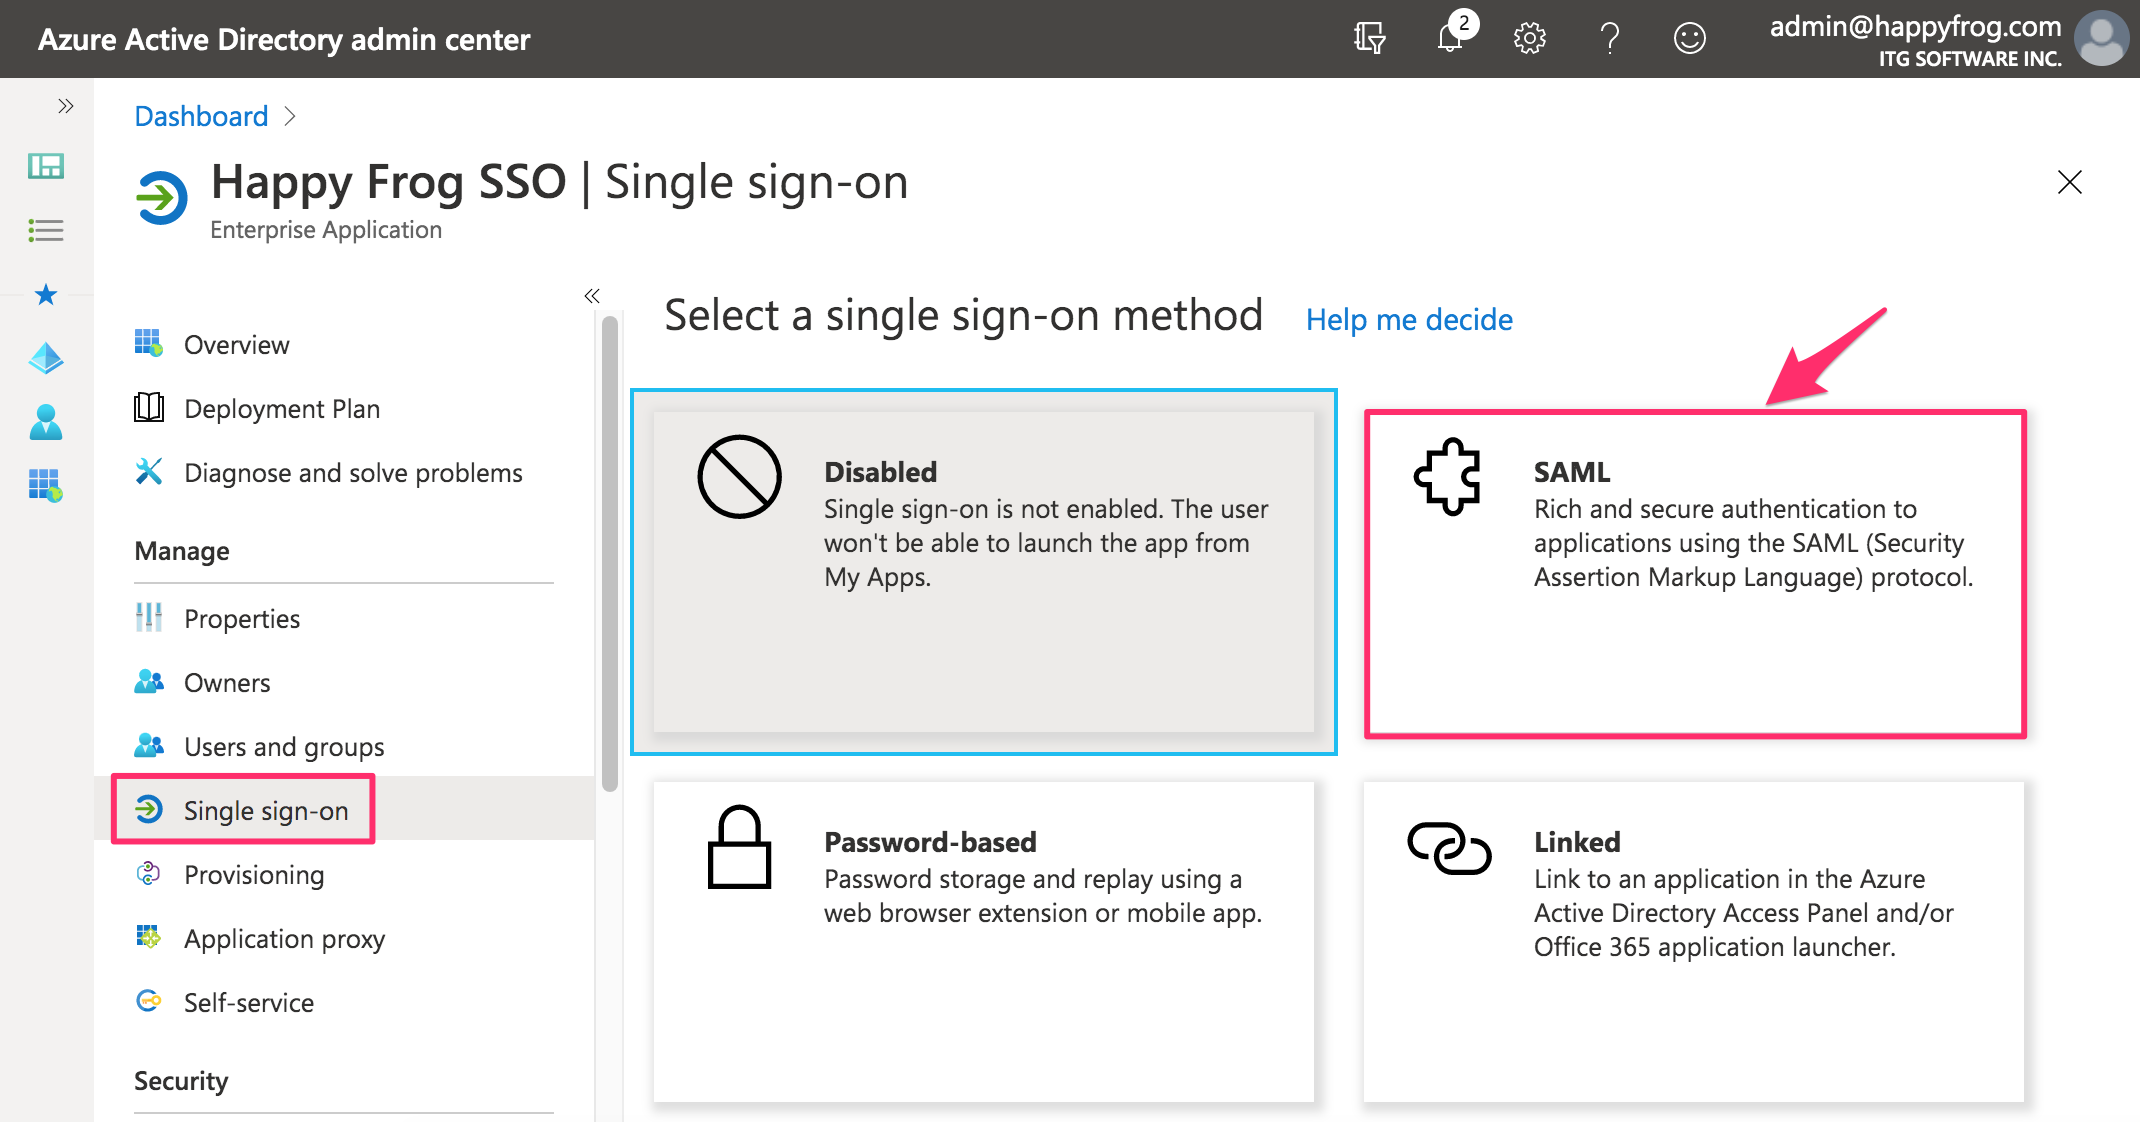 Happy_Frog_SSO___Single_sign-on_-_Azure_Active_Directory_admin_center.png